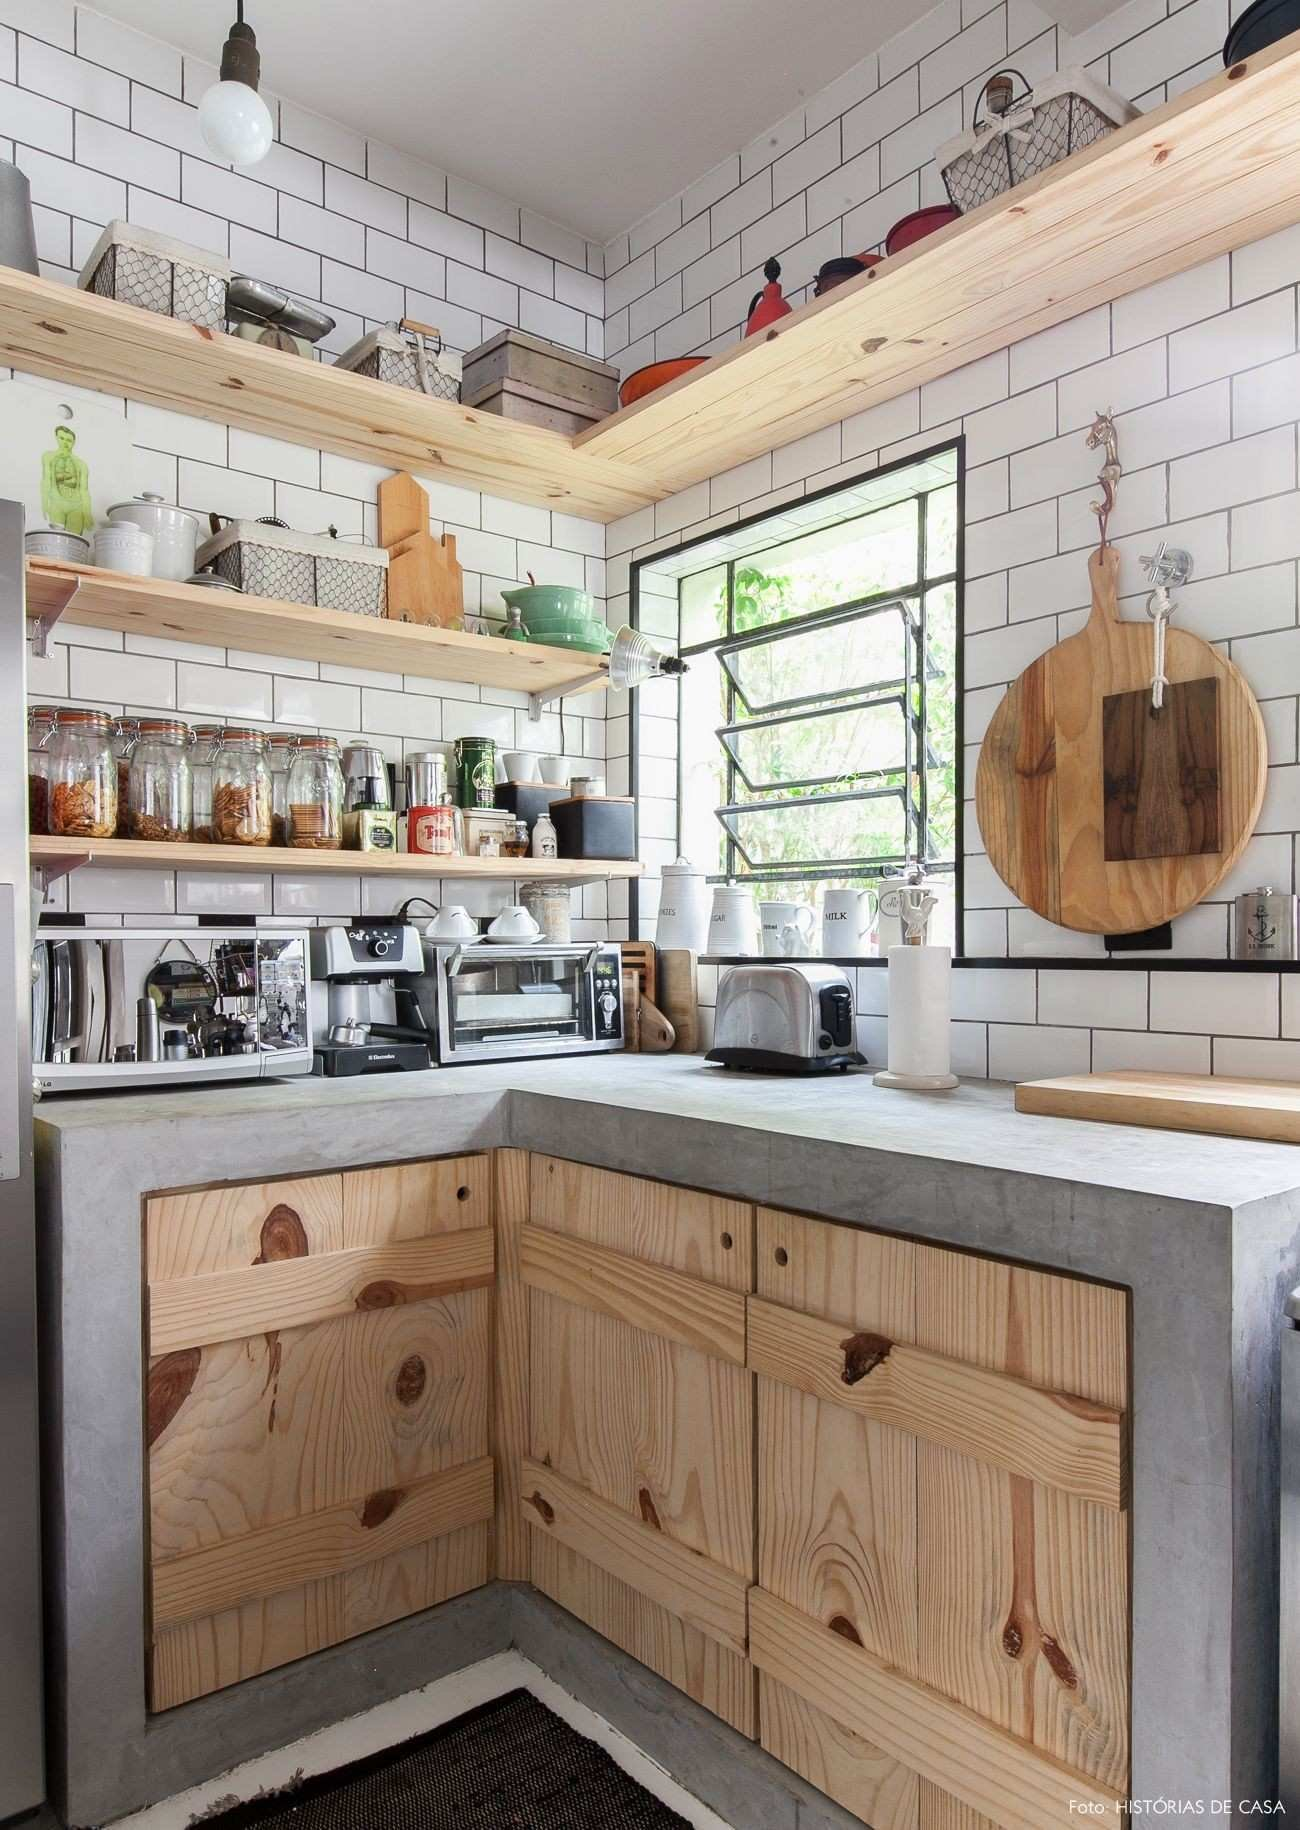 318 Another kitchen shelving system using woods and rustic plan via simphome